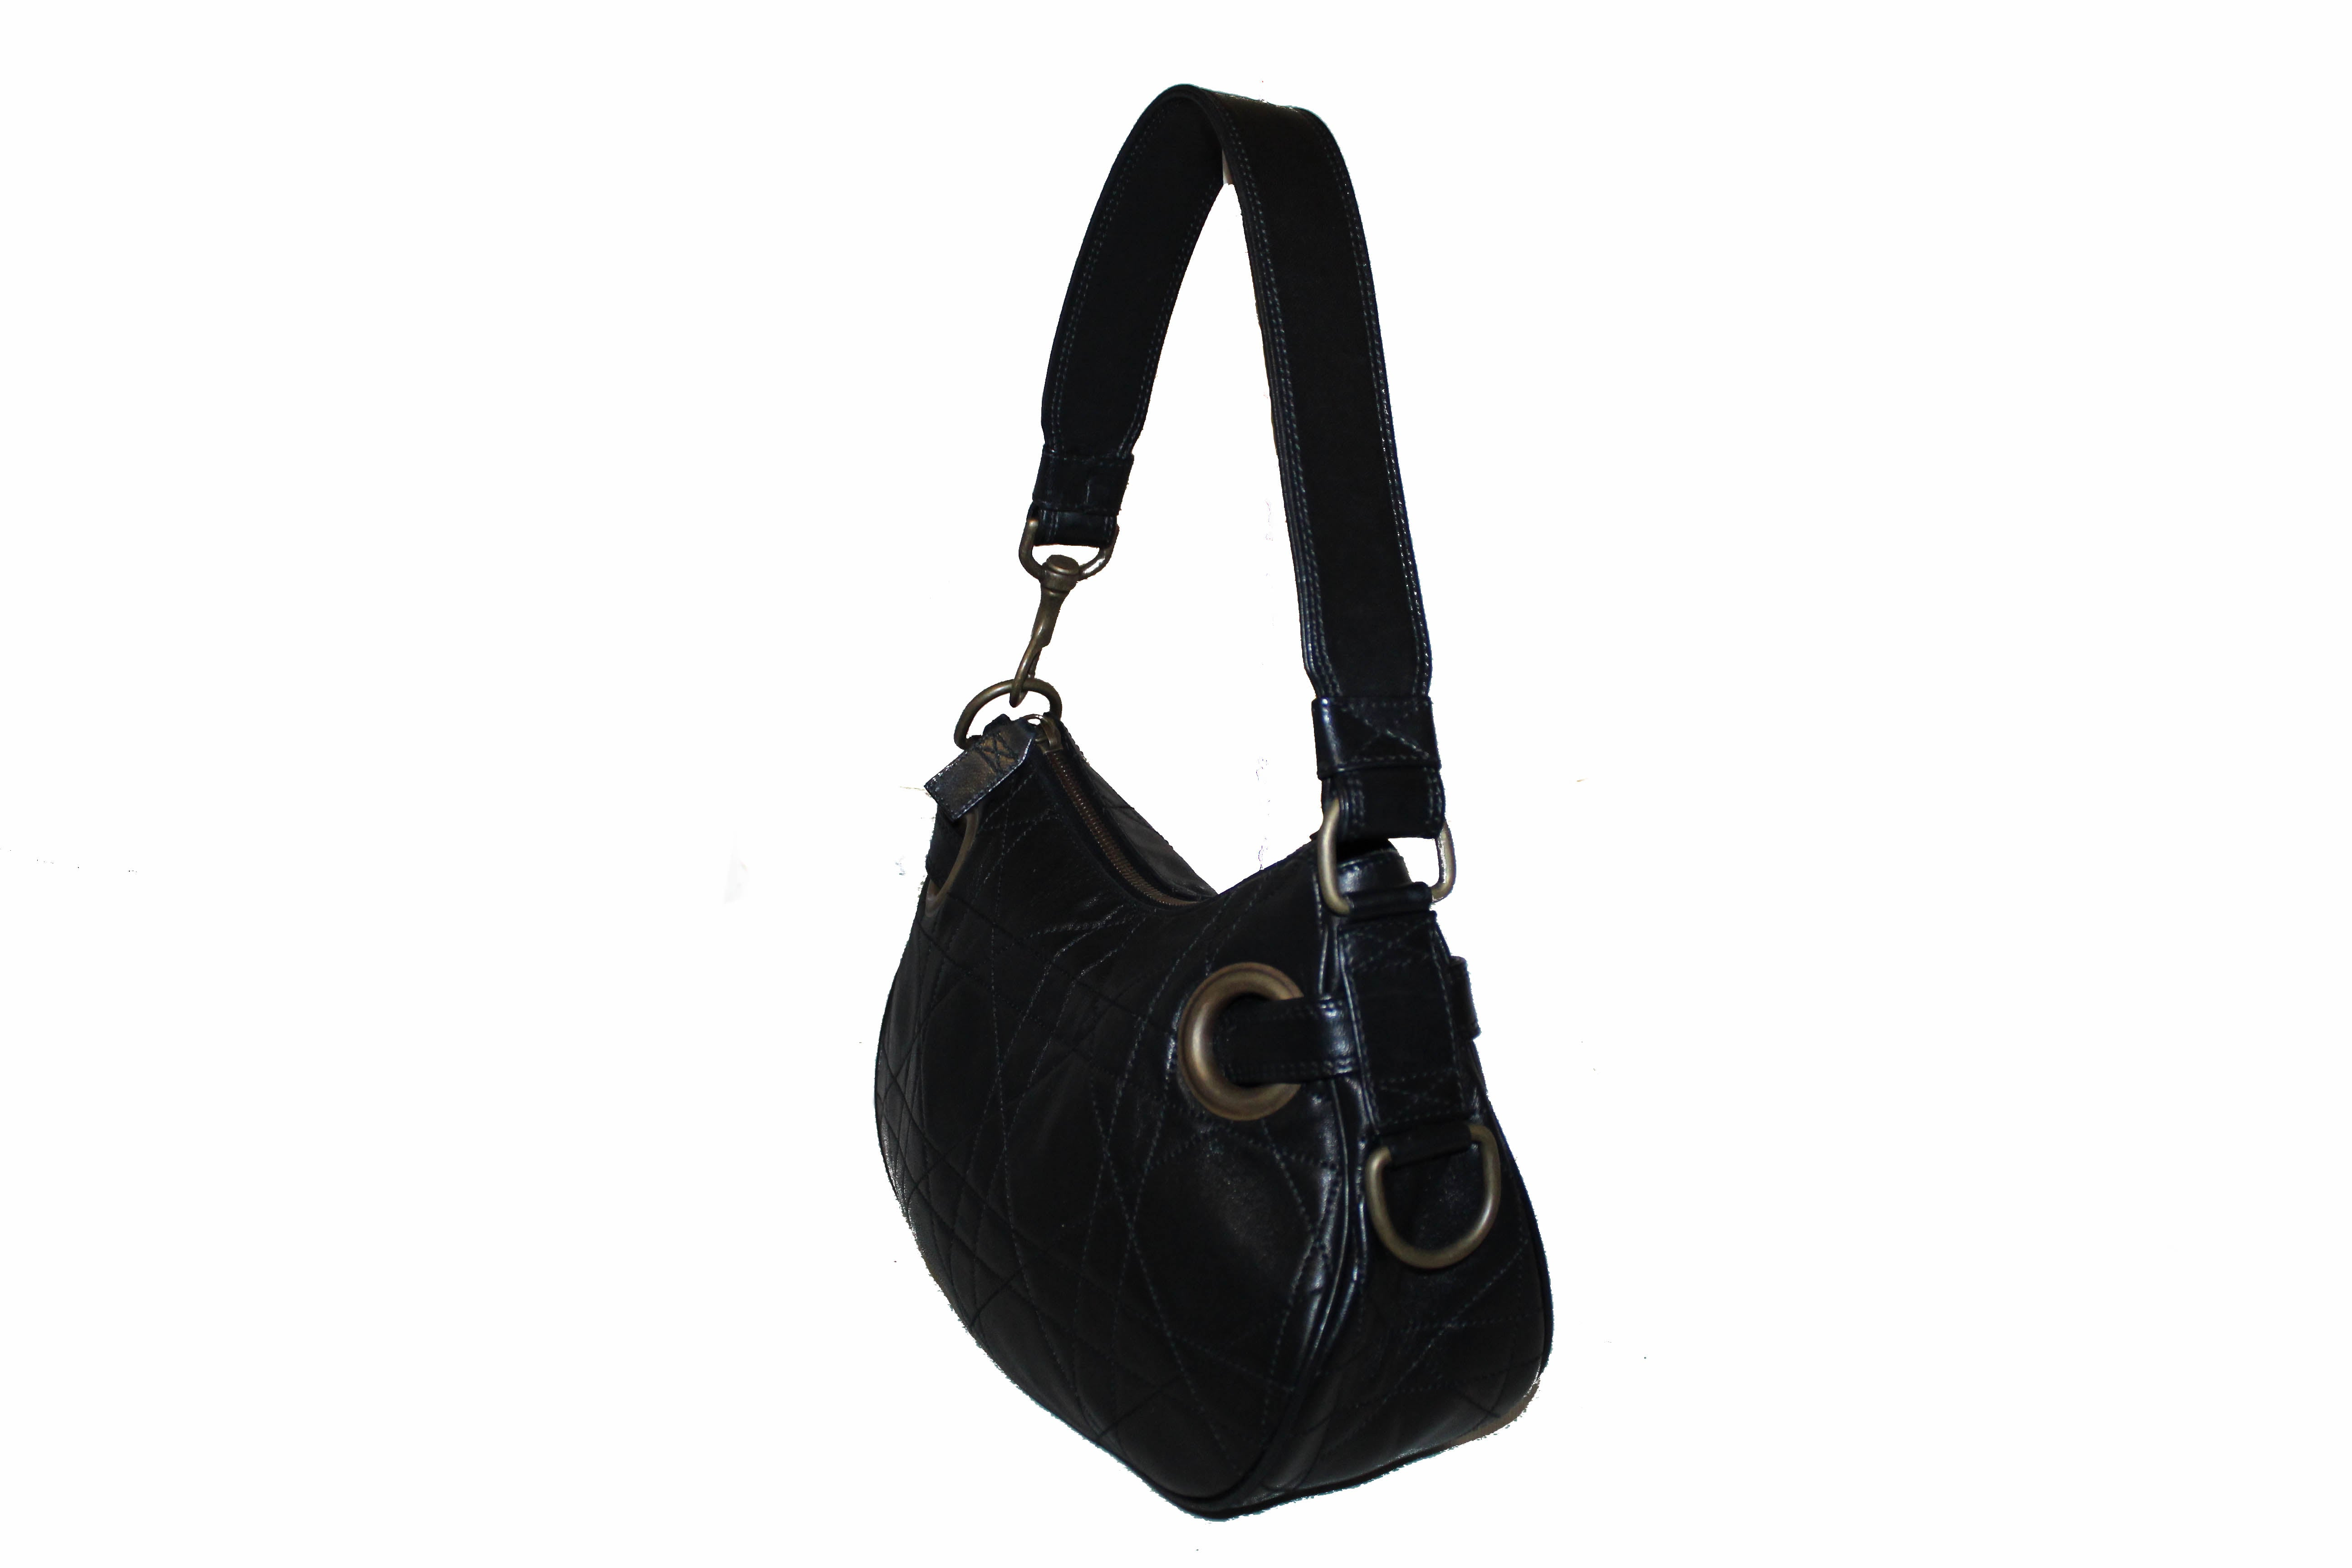 Authentic Christian Dior Black Lambskin Cannage Small Shoulder Bag